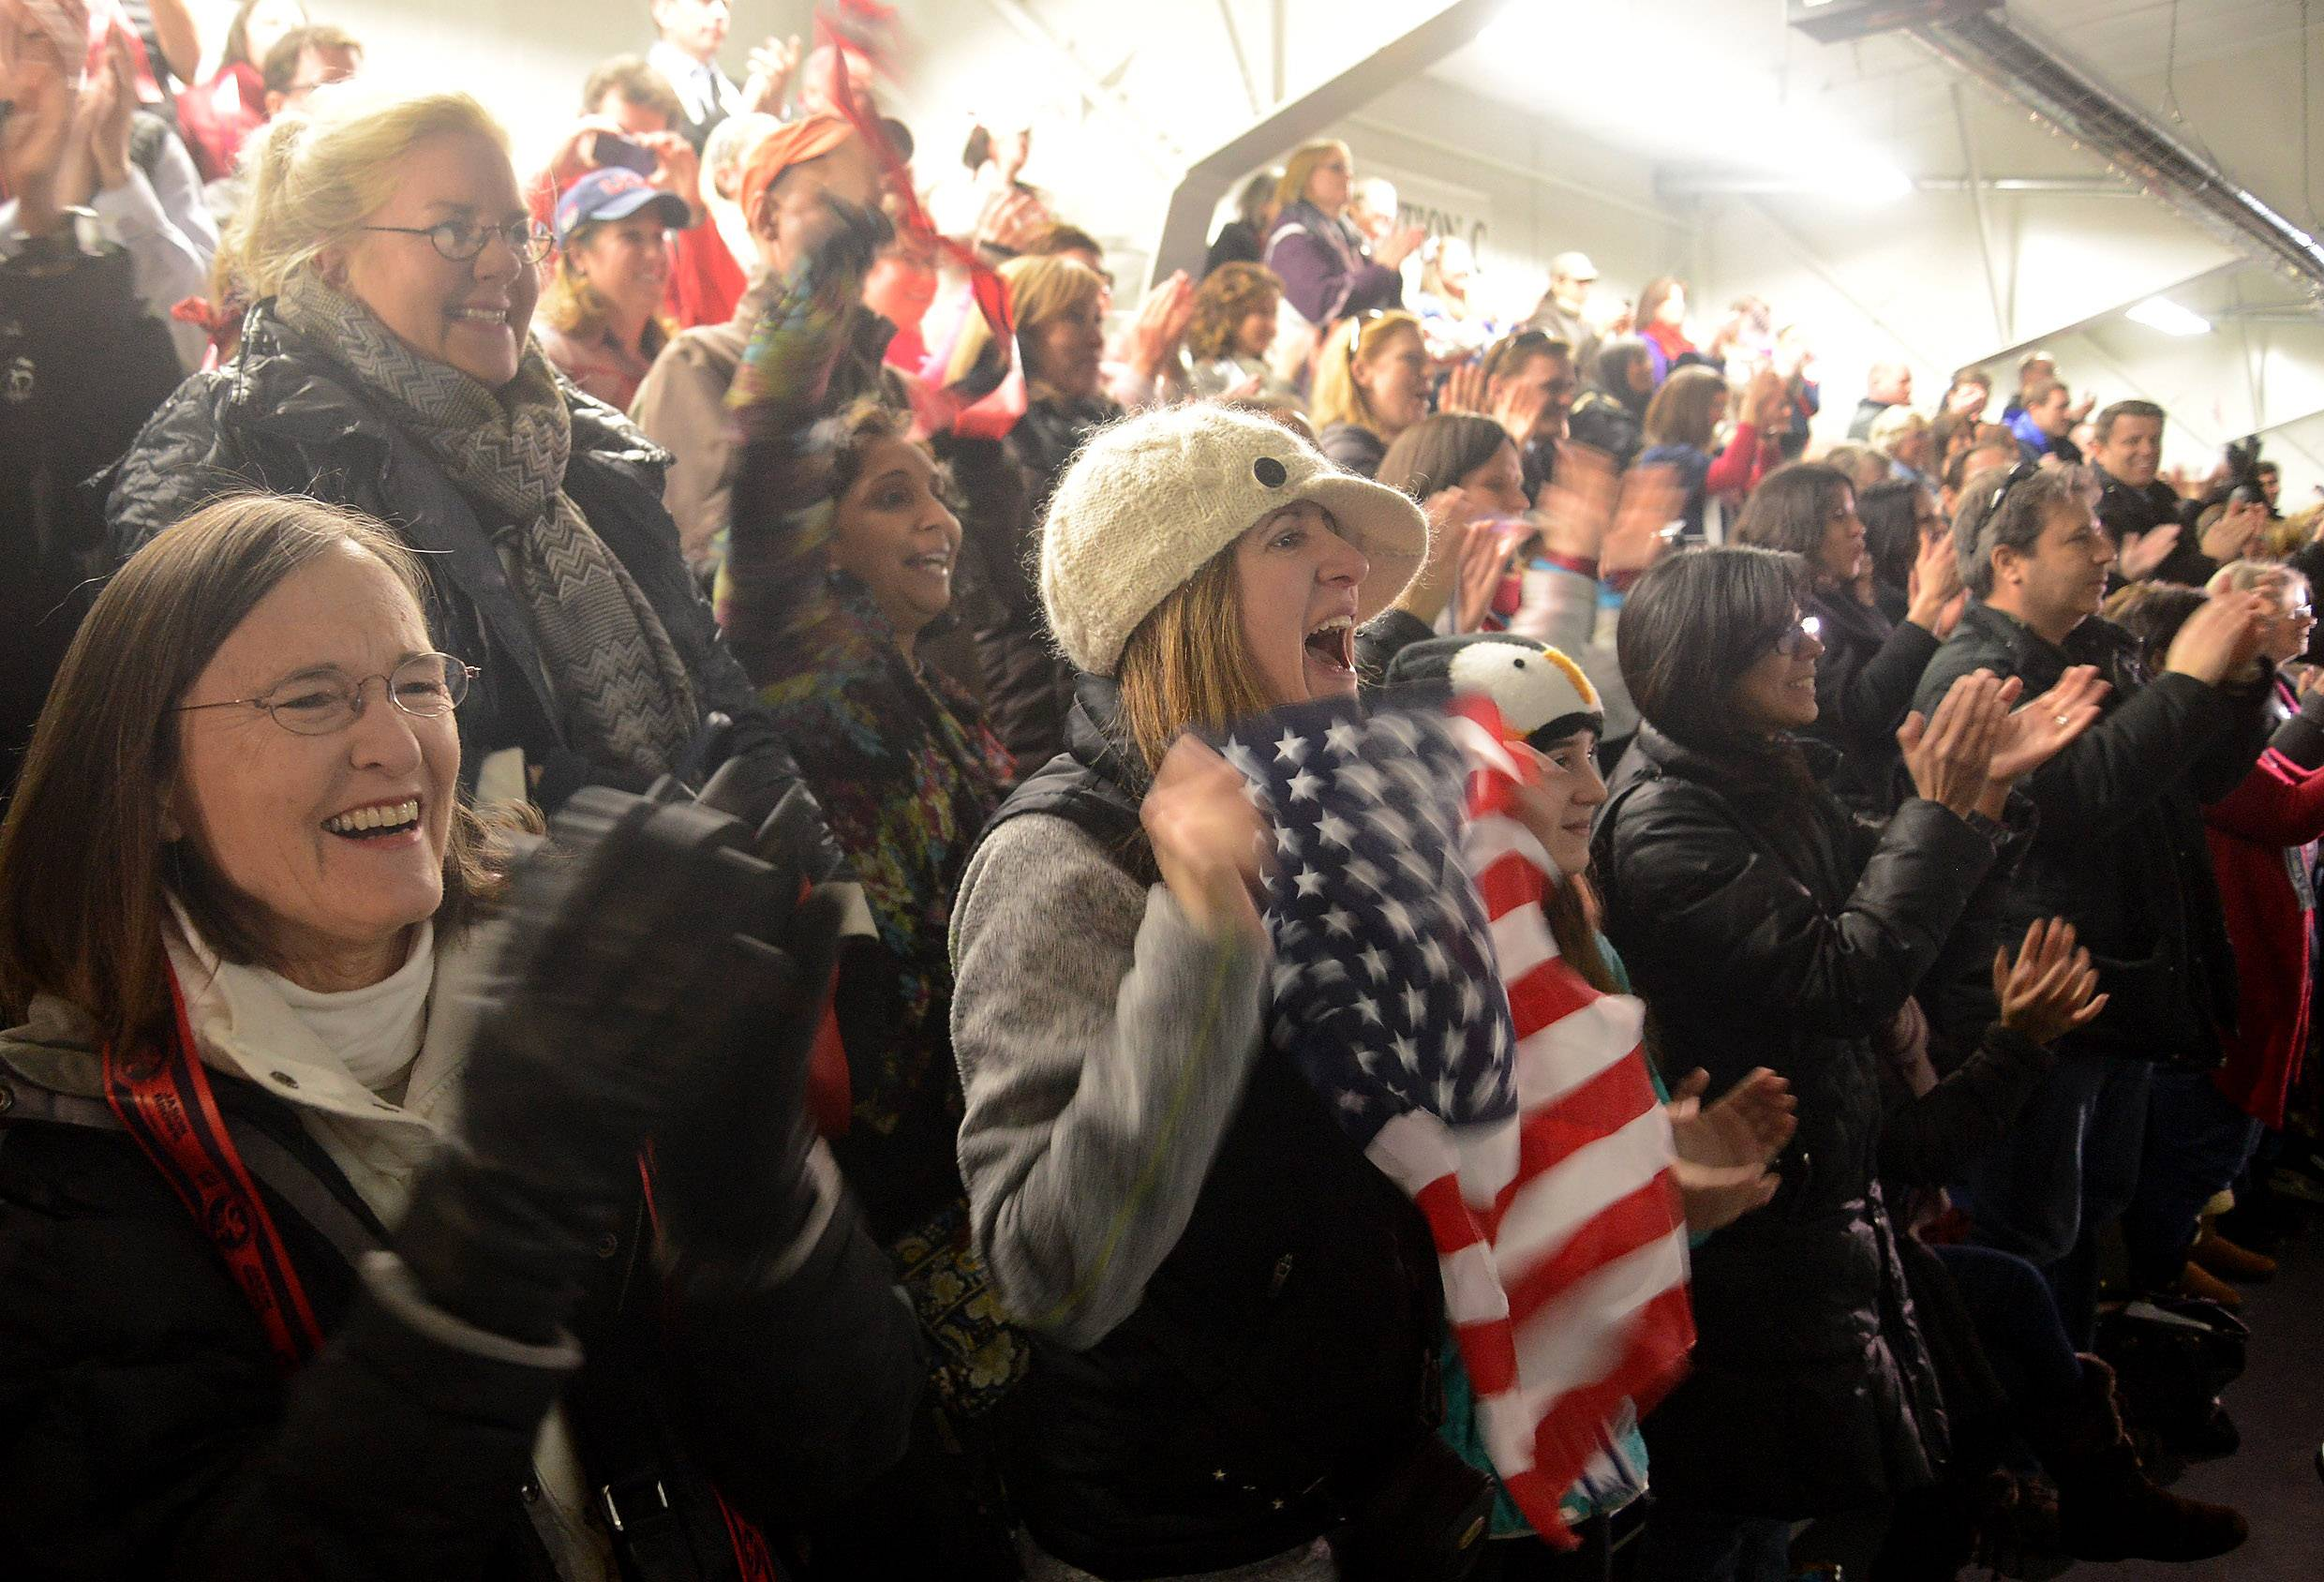 Debra Knight, of Lake Villa, holds a flag and cheers during a Friday viewing party at the Centennial Ice Arena in Highland Park for hometown Olympic skater Jason Brown.